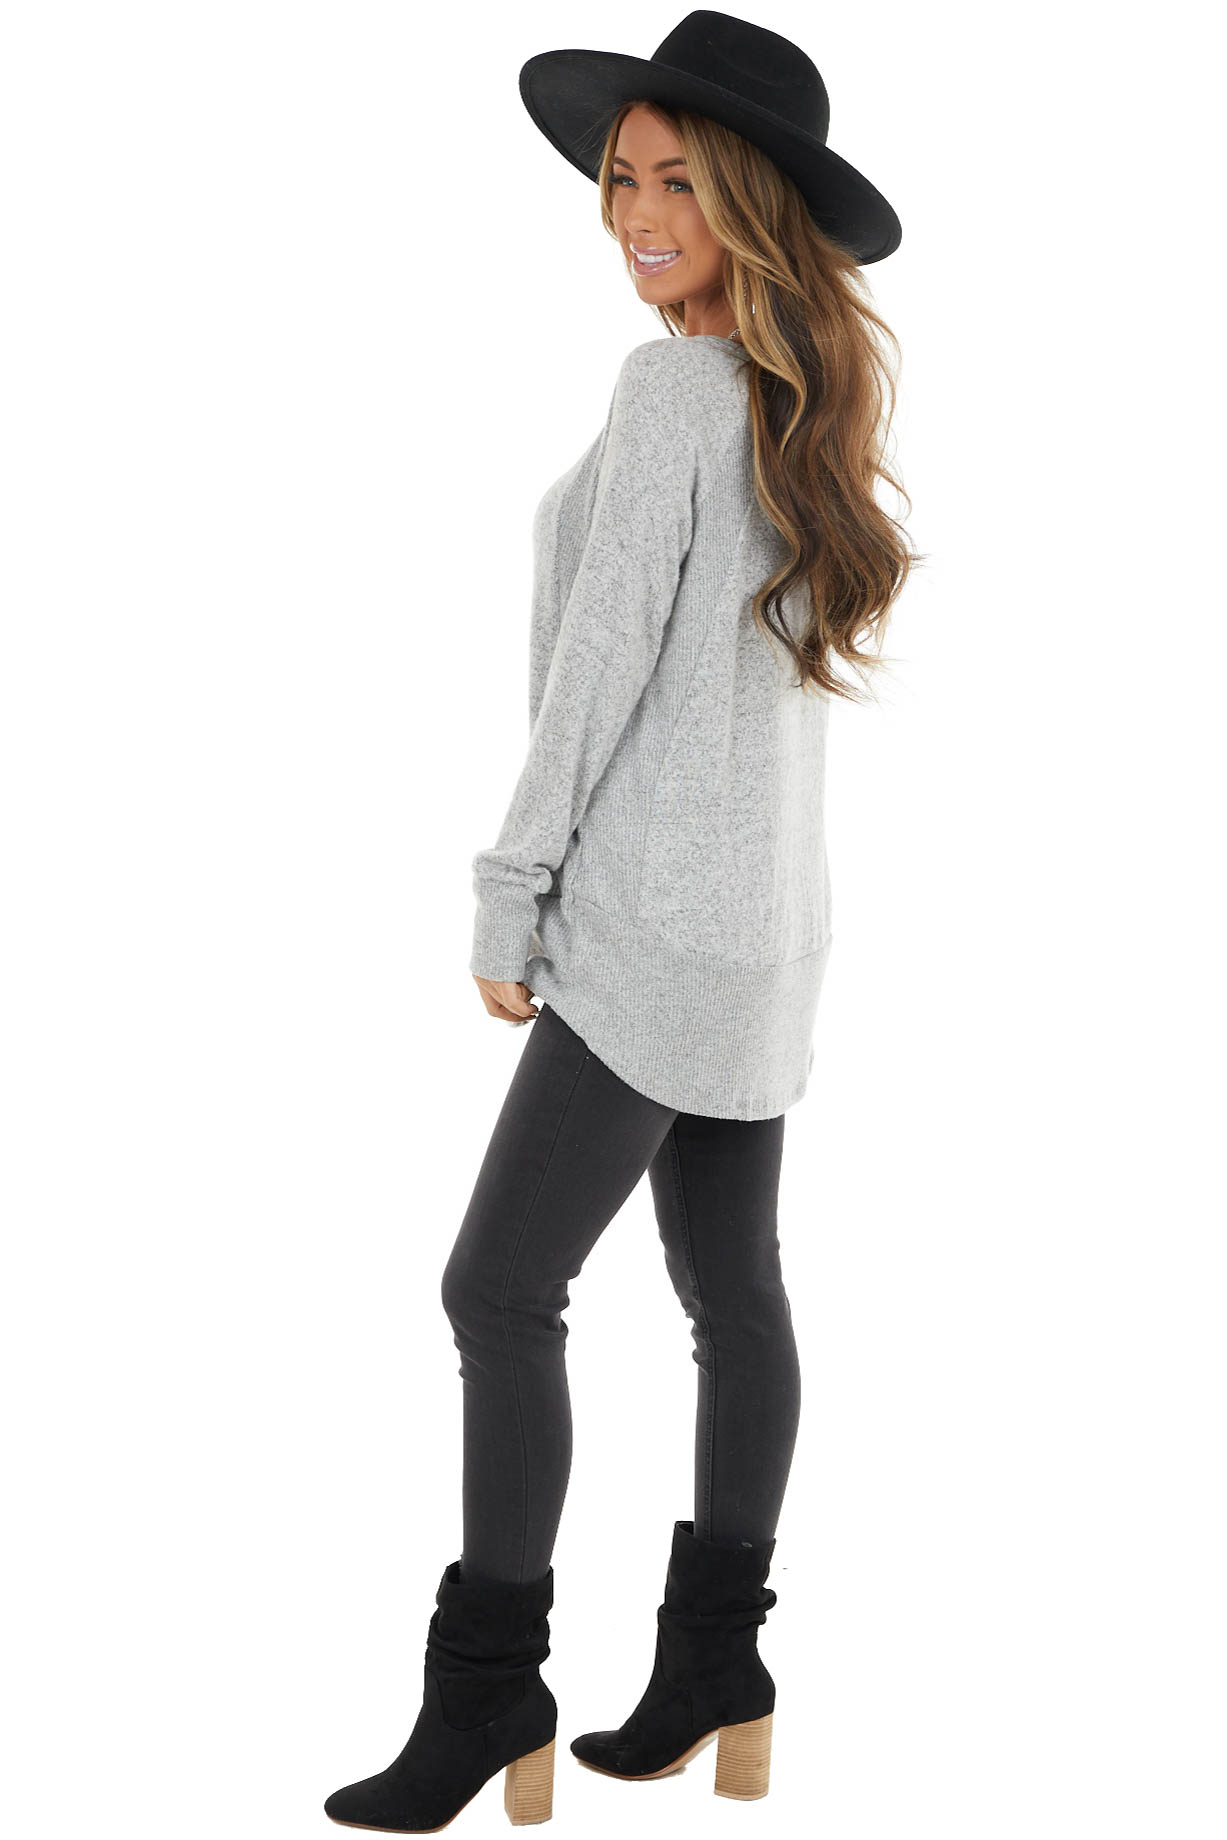 Dove Grey Long Sleeve Stretchy Knit Top with Ribbed Details